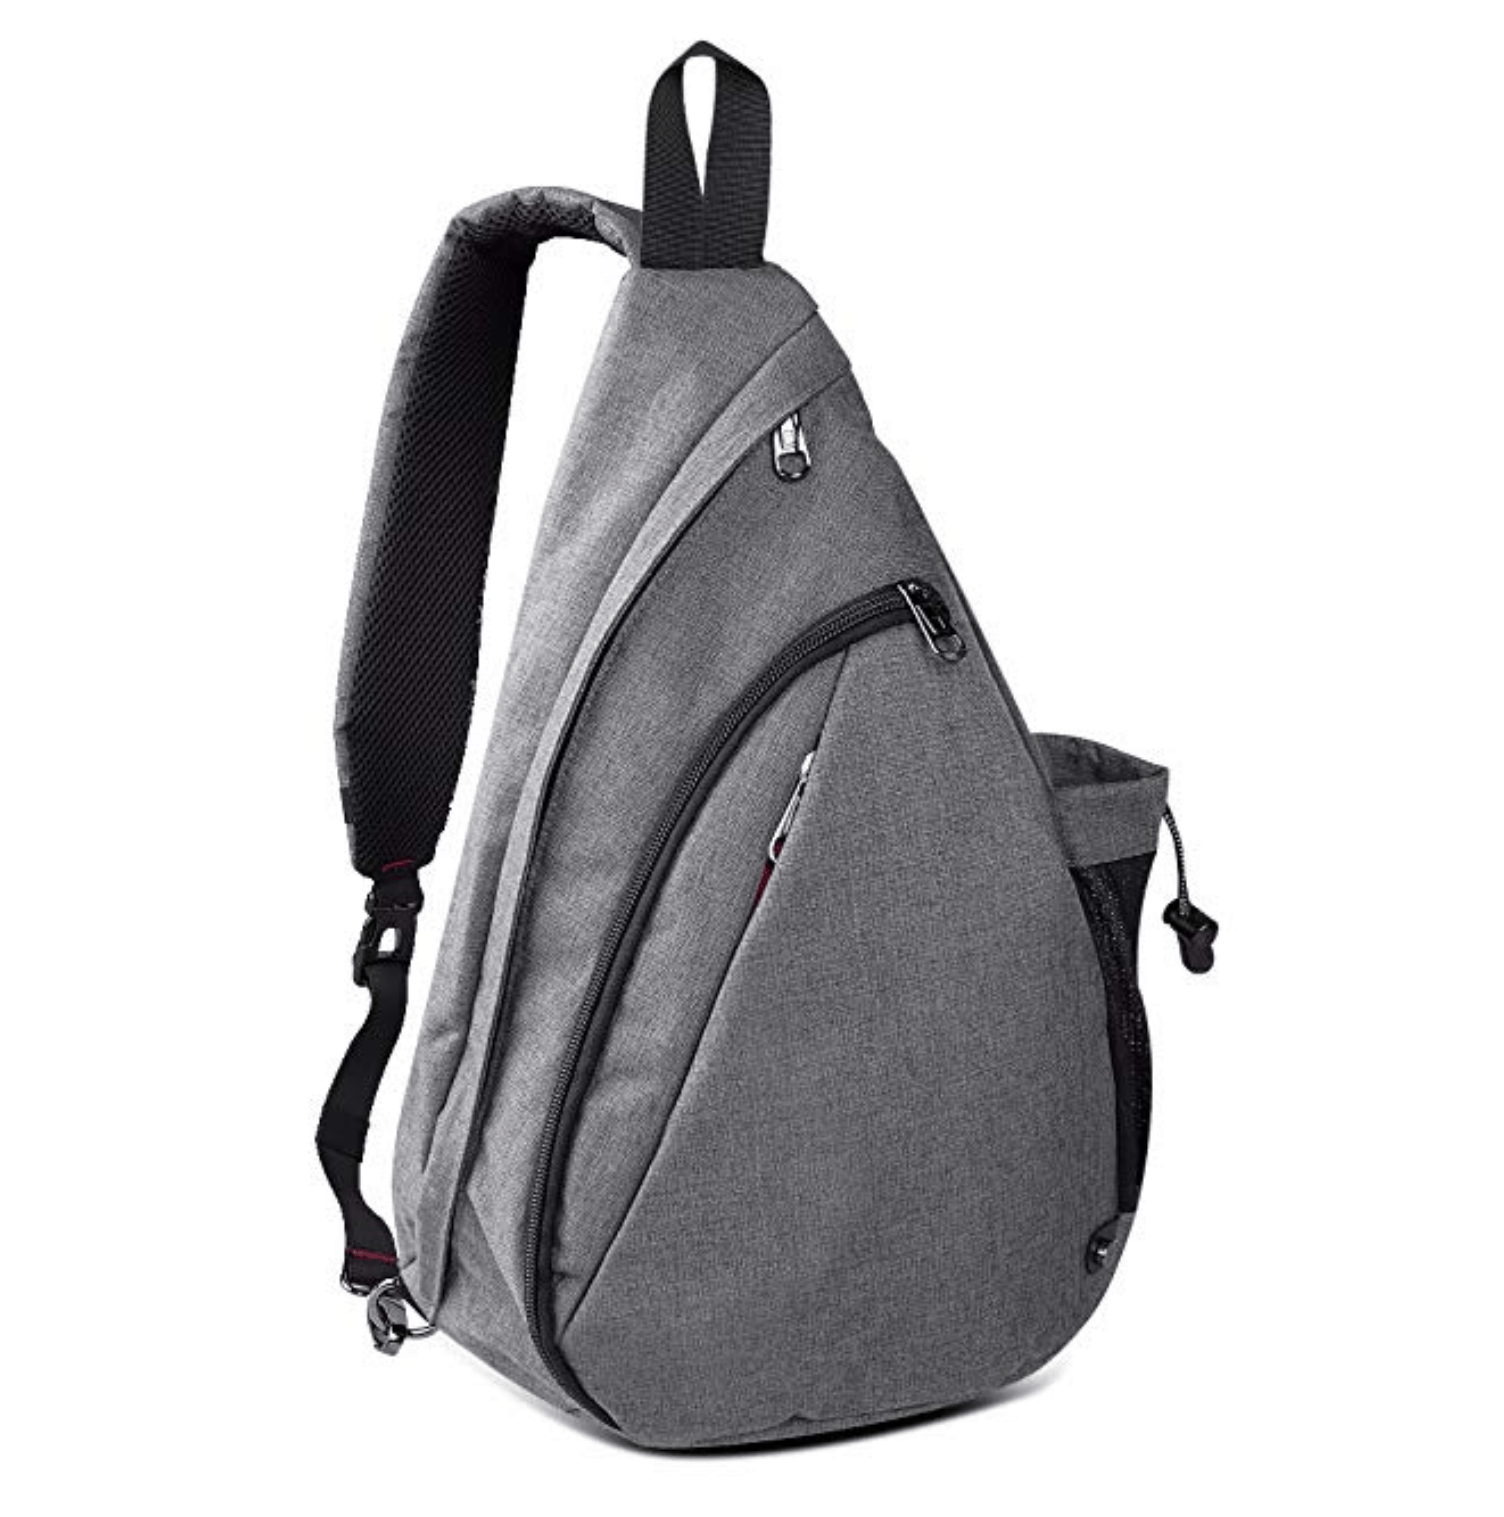 Best functional backpacks for Disney World and Disney Land